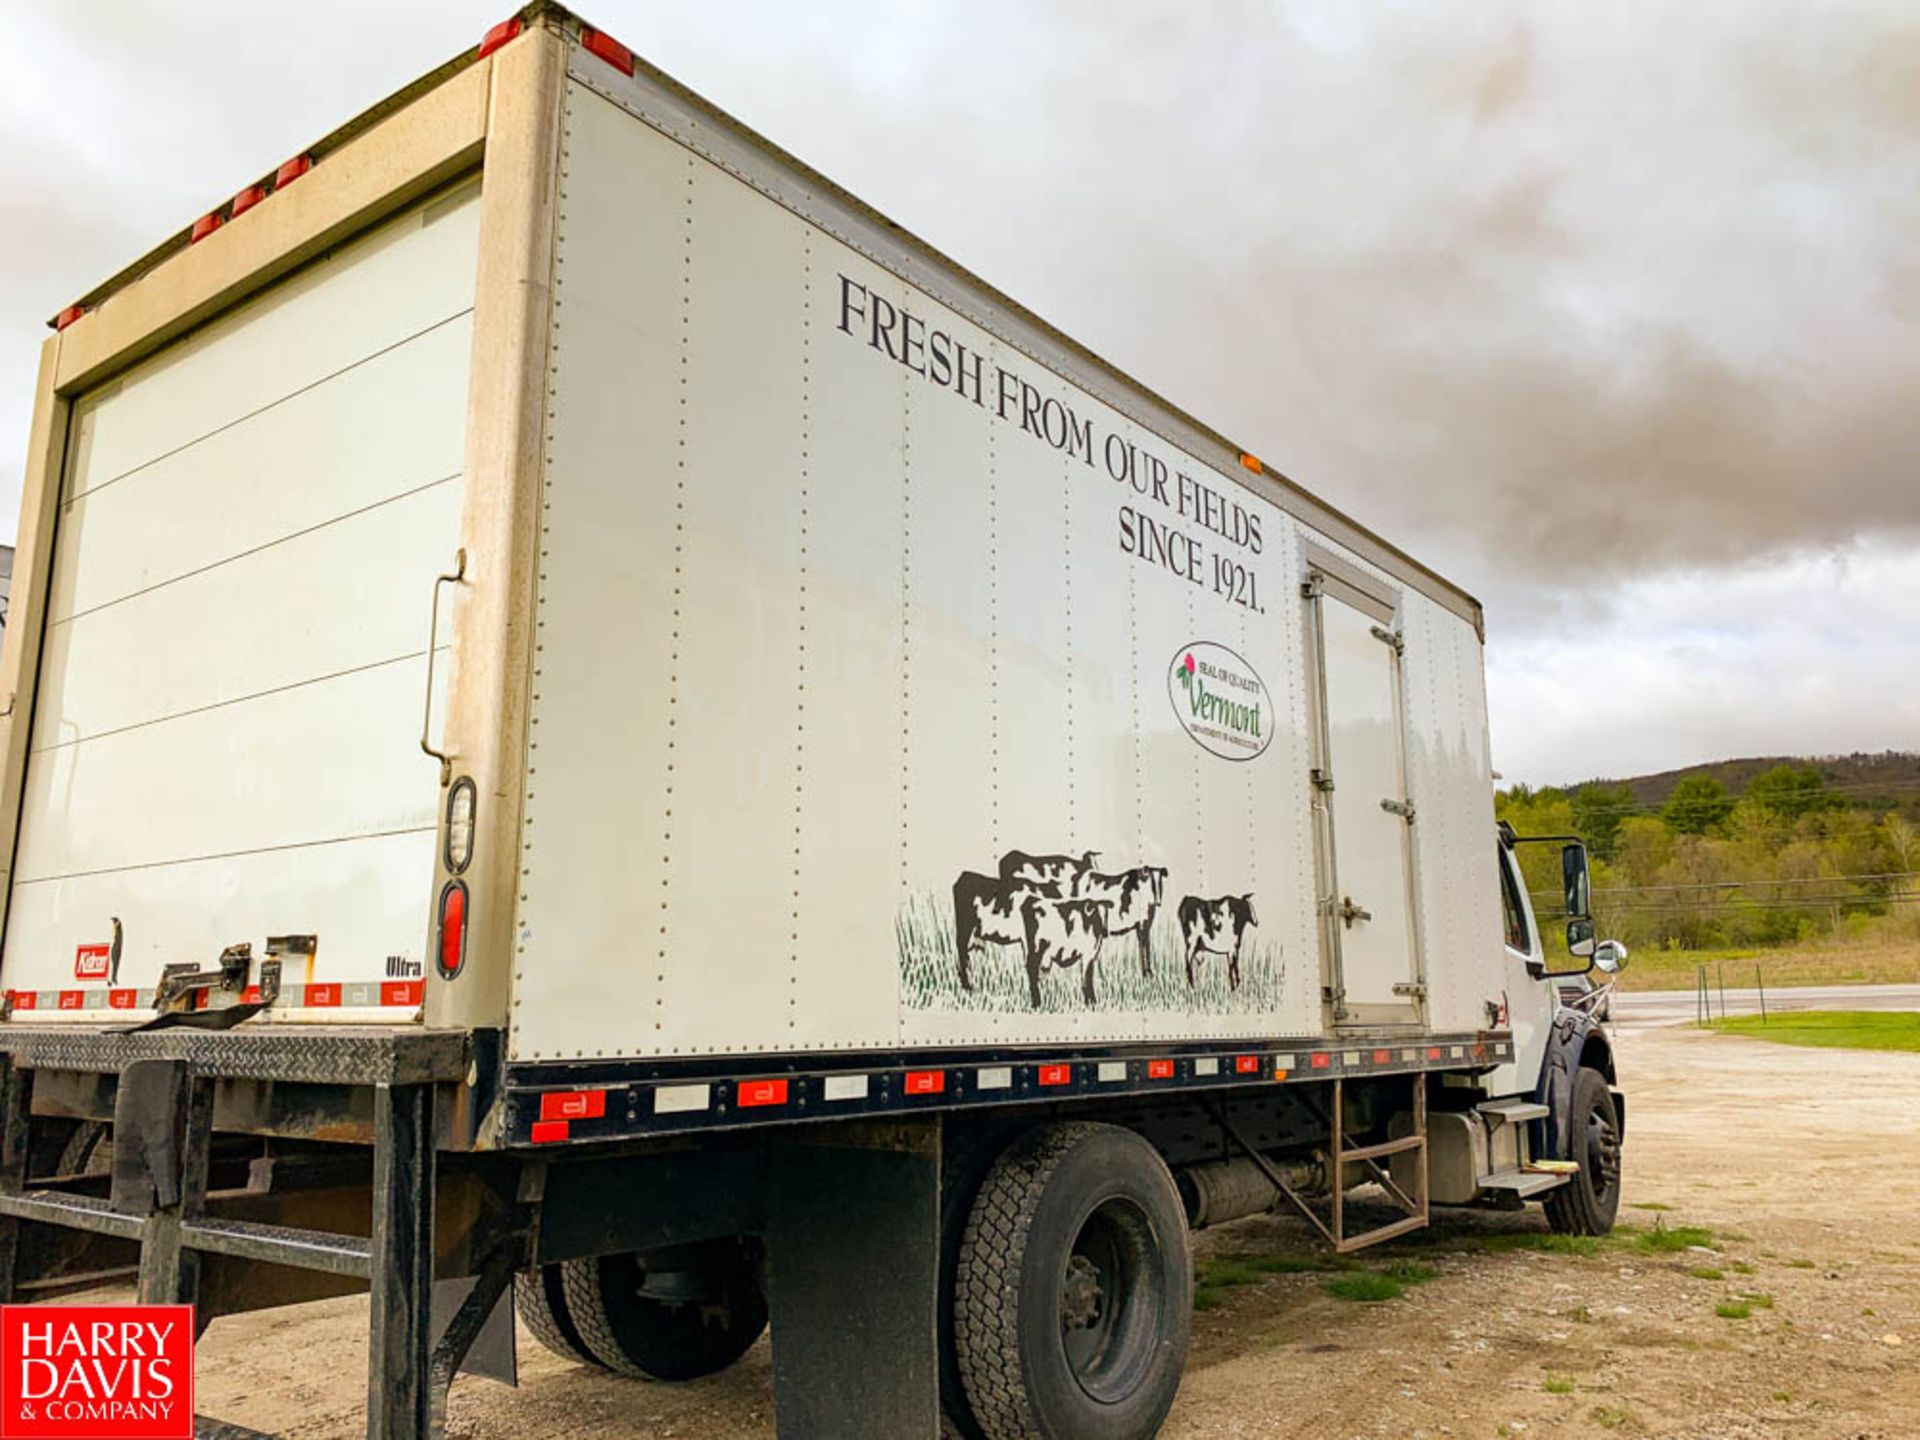 2017 Freightliner 20' Refrigerated Delivery Truck Model: M2106, 33,000 GVWR, Cummins IBS 6.7 280 - Image 2 of 8